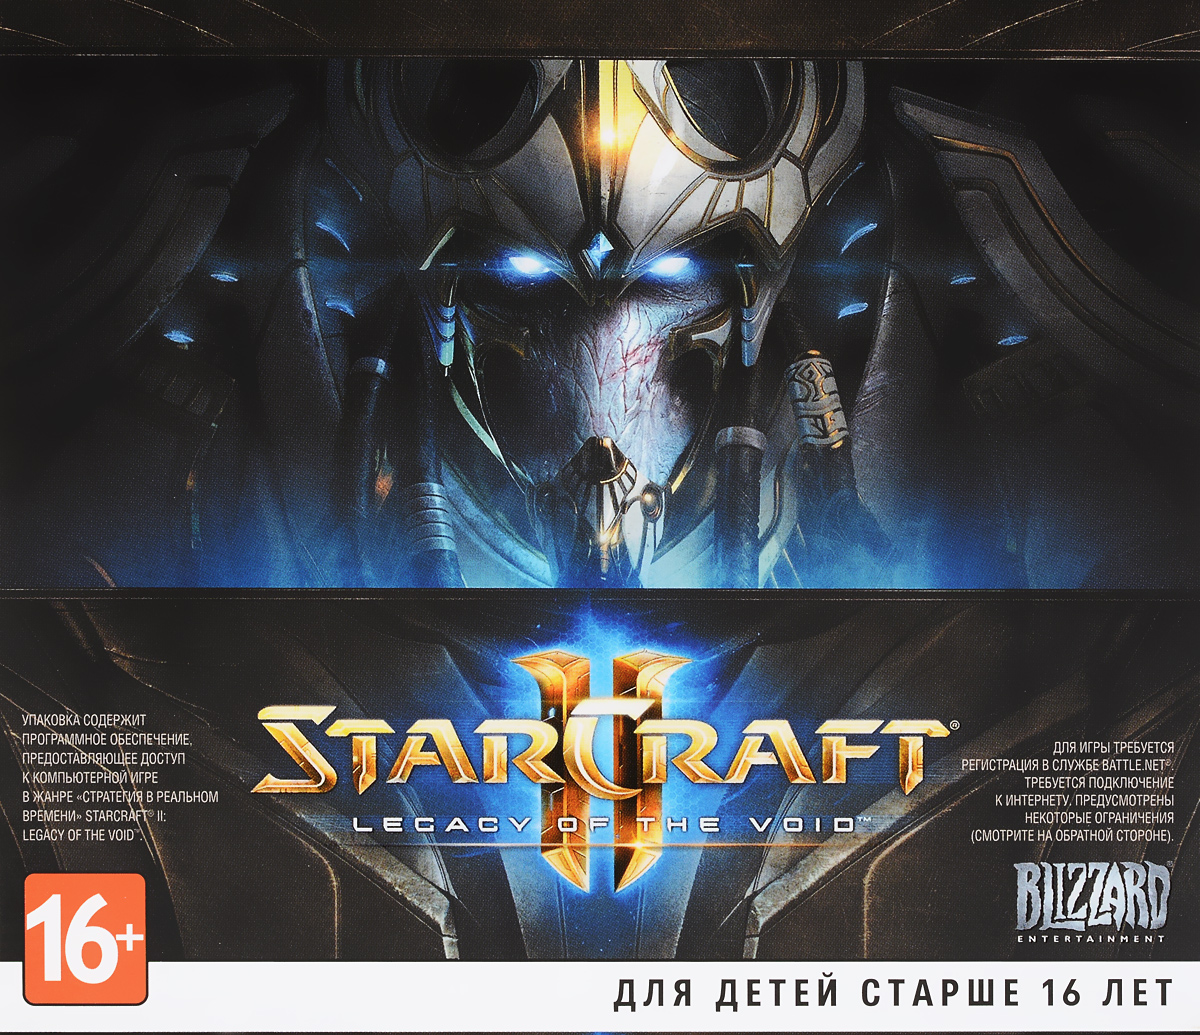 Blizzard Entertainment Starcraft II: Legacy Of The Void (2 DVD Jewel)